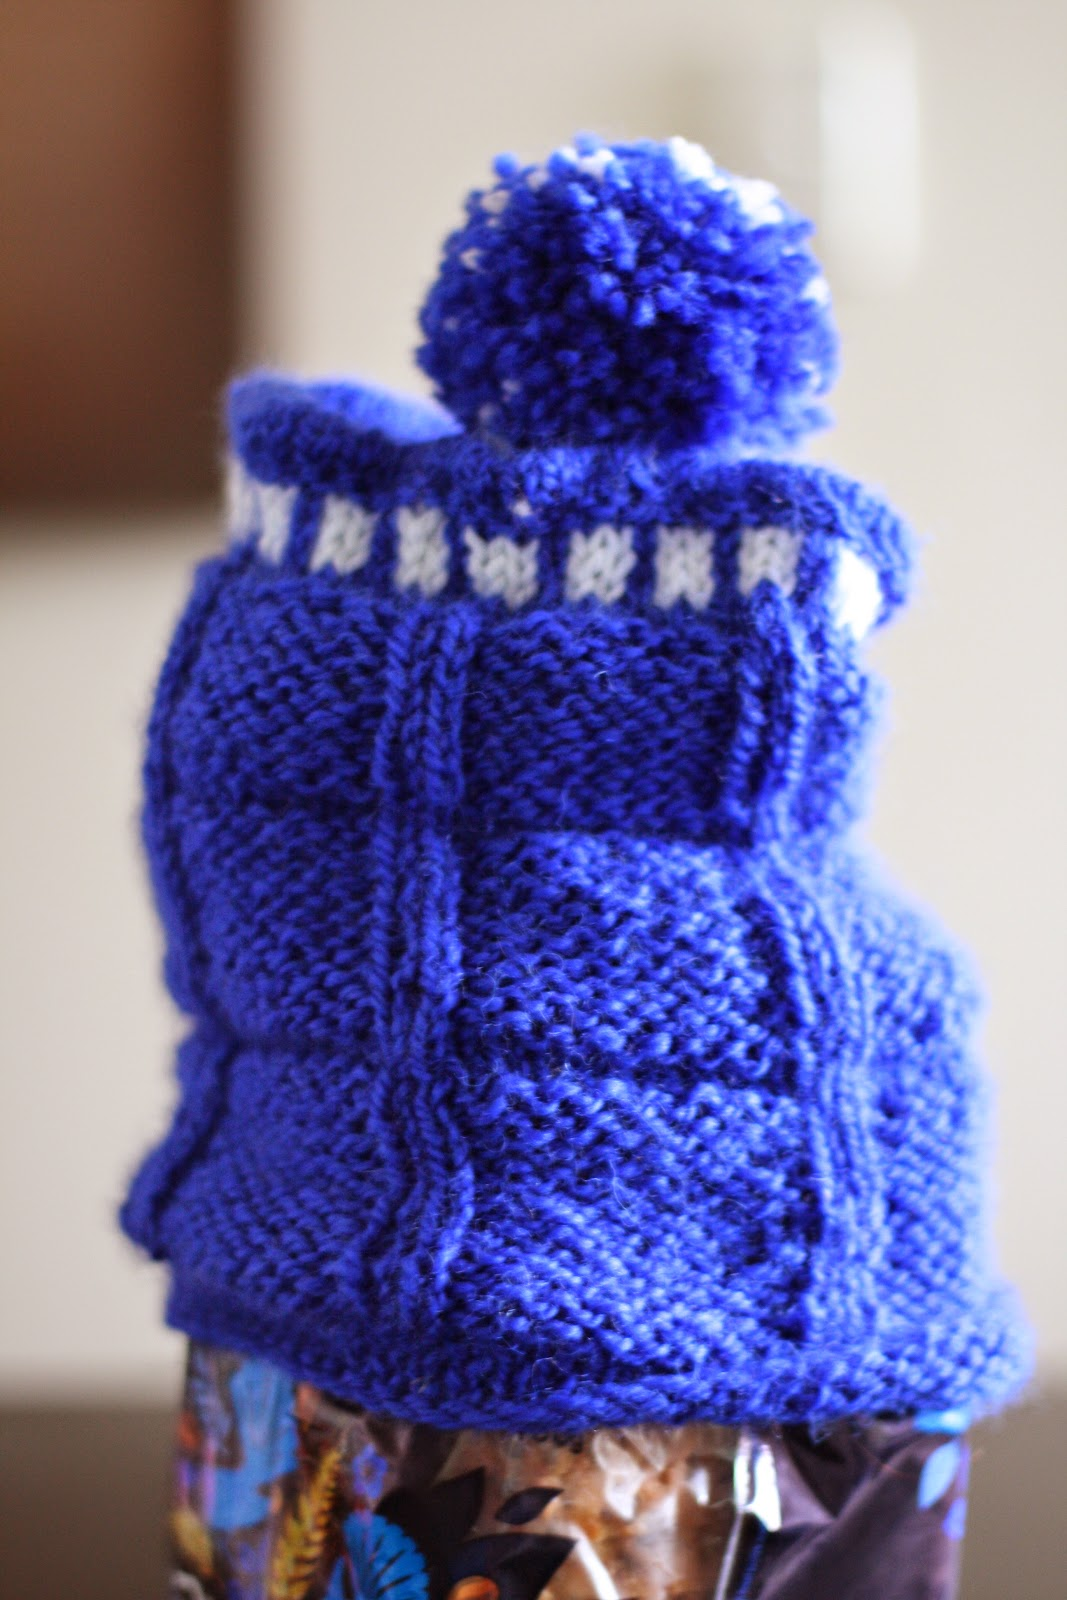 A blue tardis hat with a pom pom sitting on a loaf of bread.